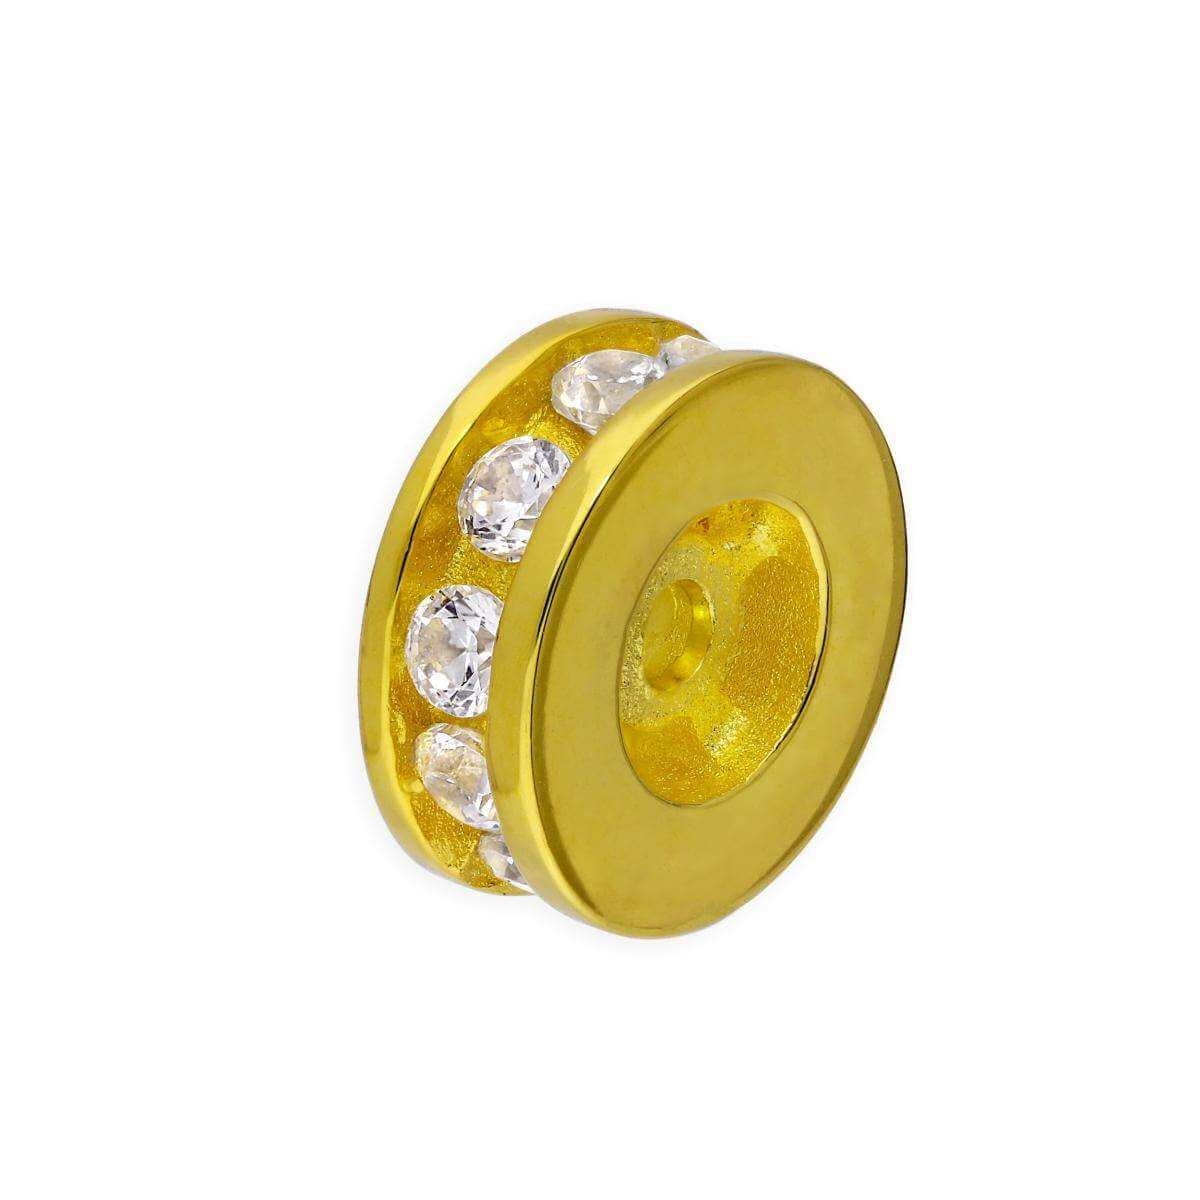 Gold Plated Sterling Silver 3mm Round Channel Set Clear CZ Ring Bead